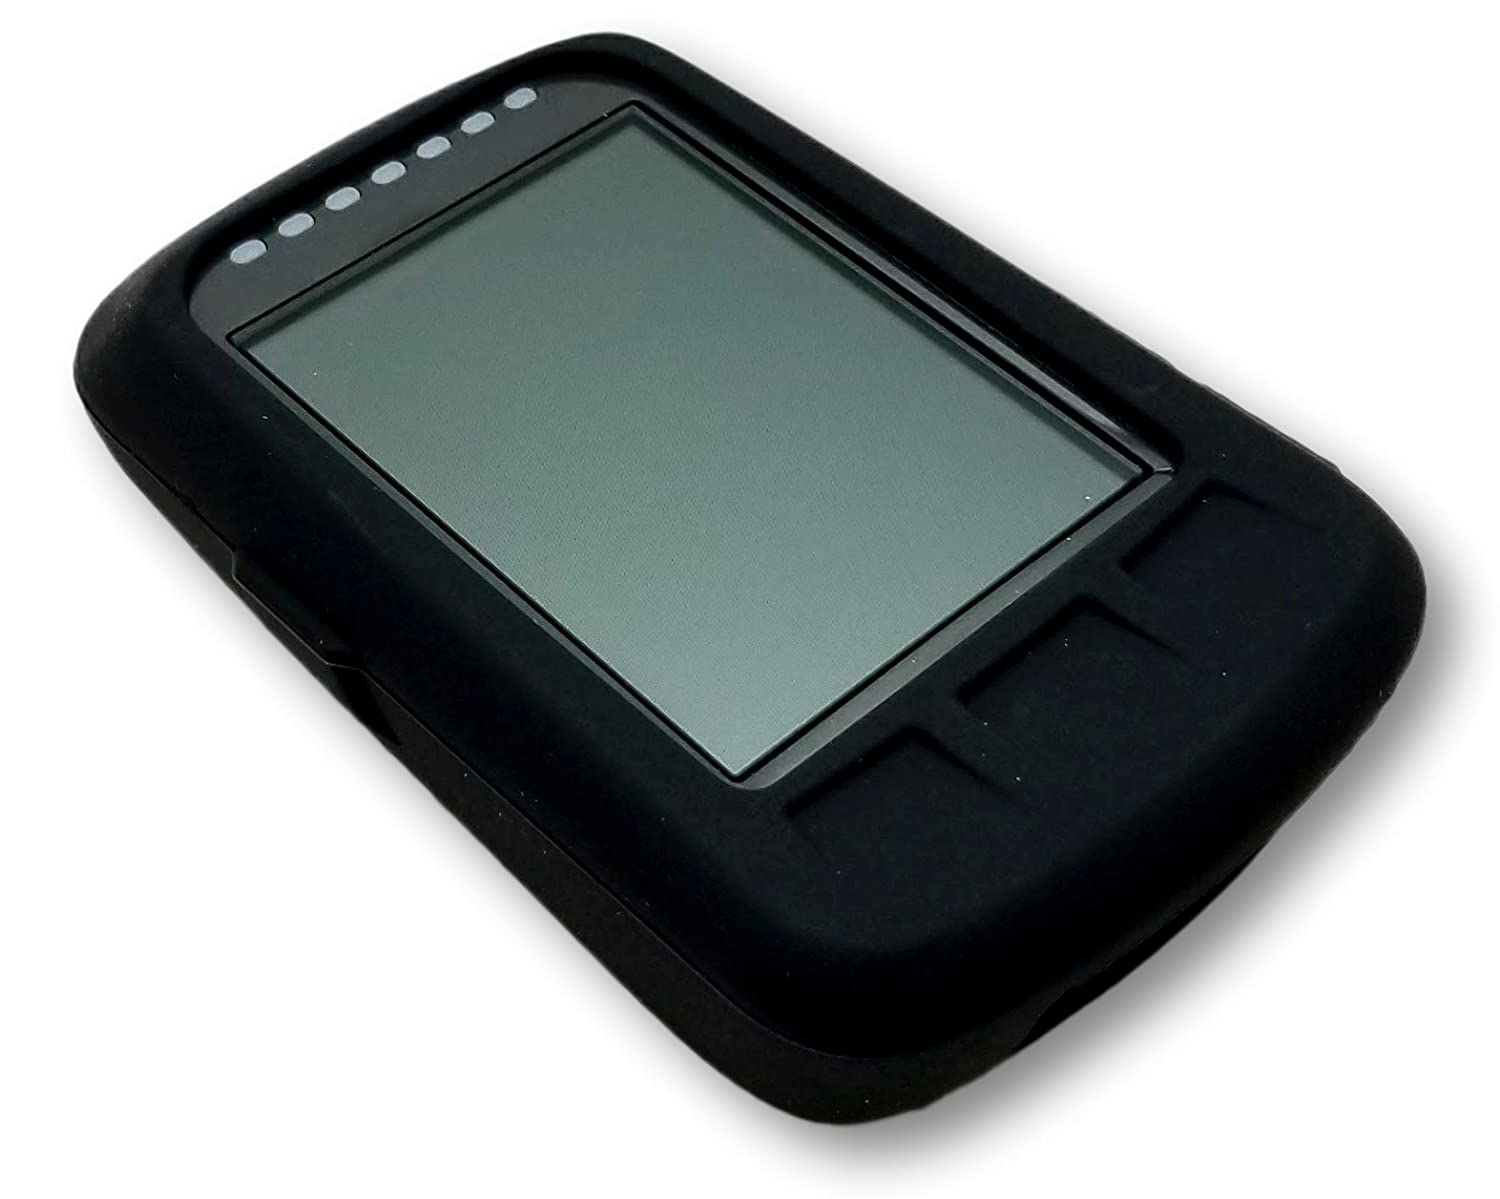 and 3 Screen Protectors G-SAVR Garmin Edge Ultimate Protection Bundle Includes Lanyard Molded Protective Silicone Case